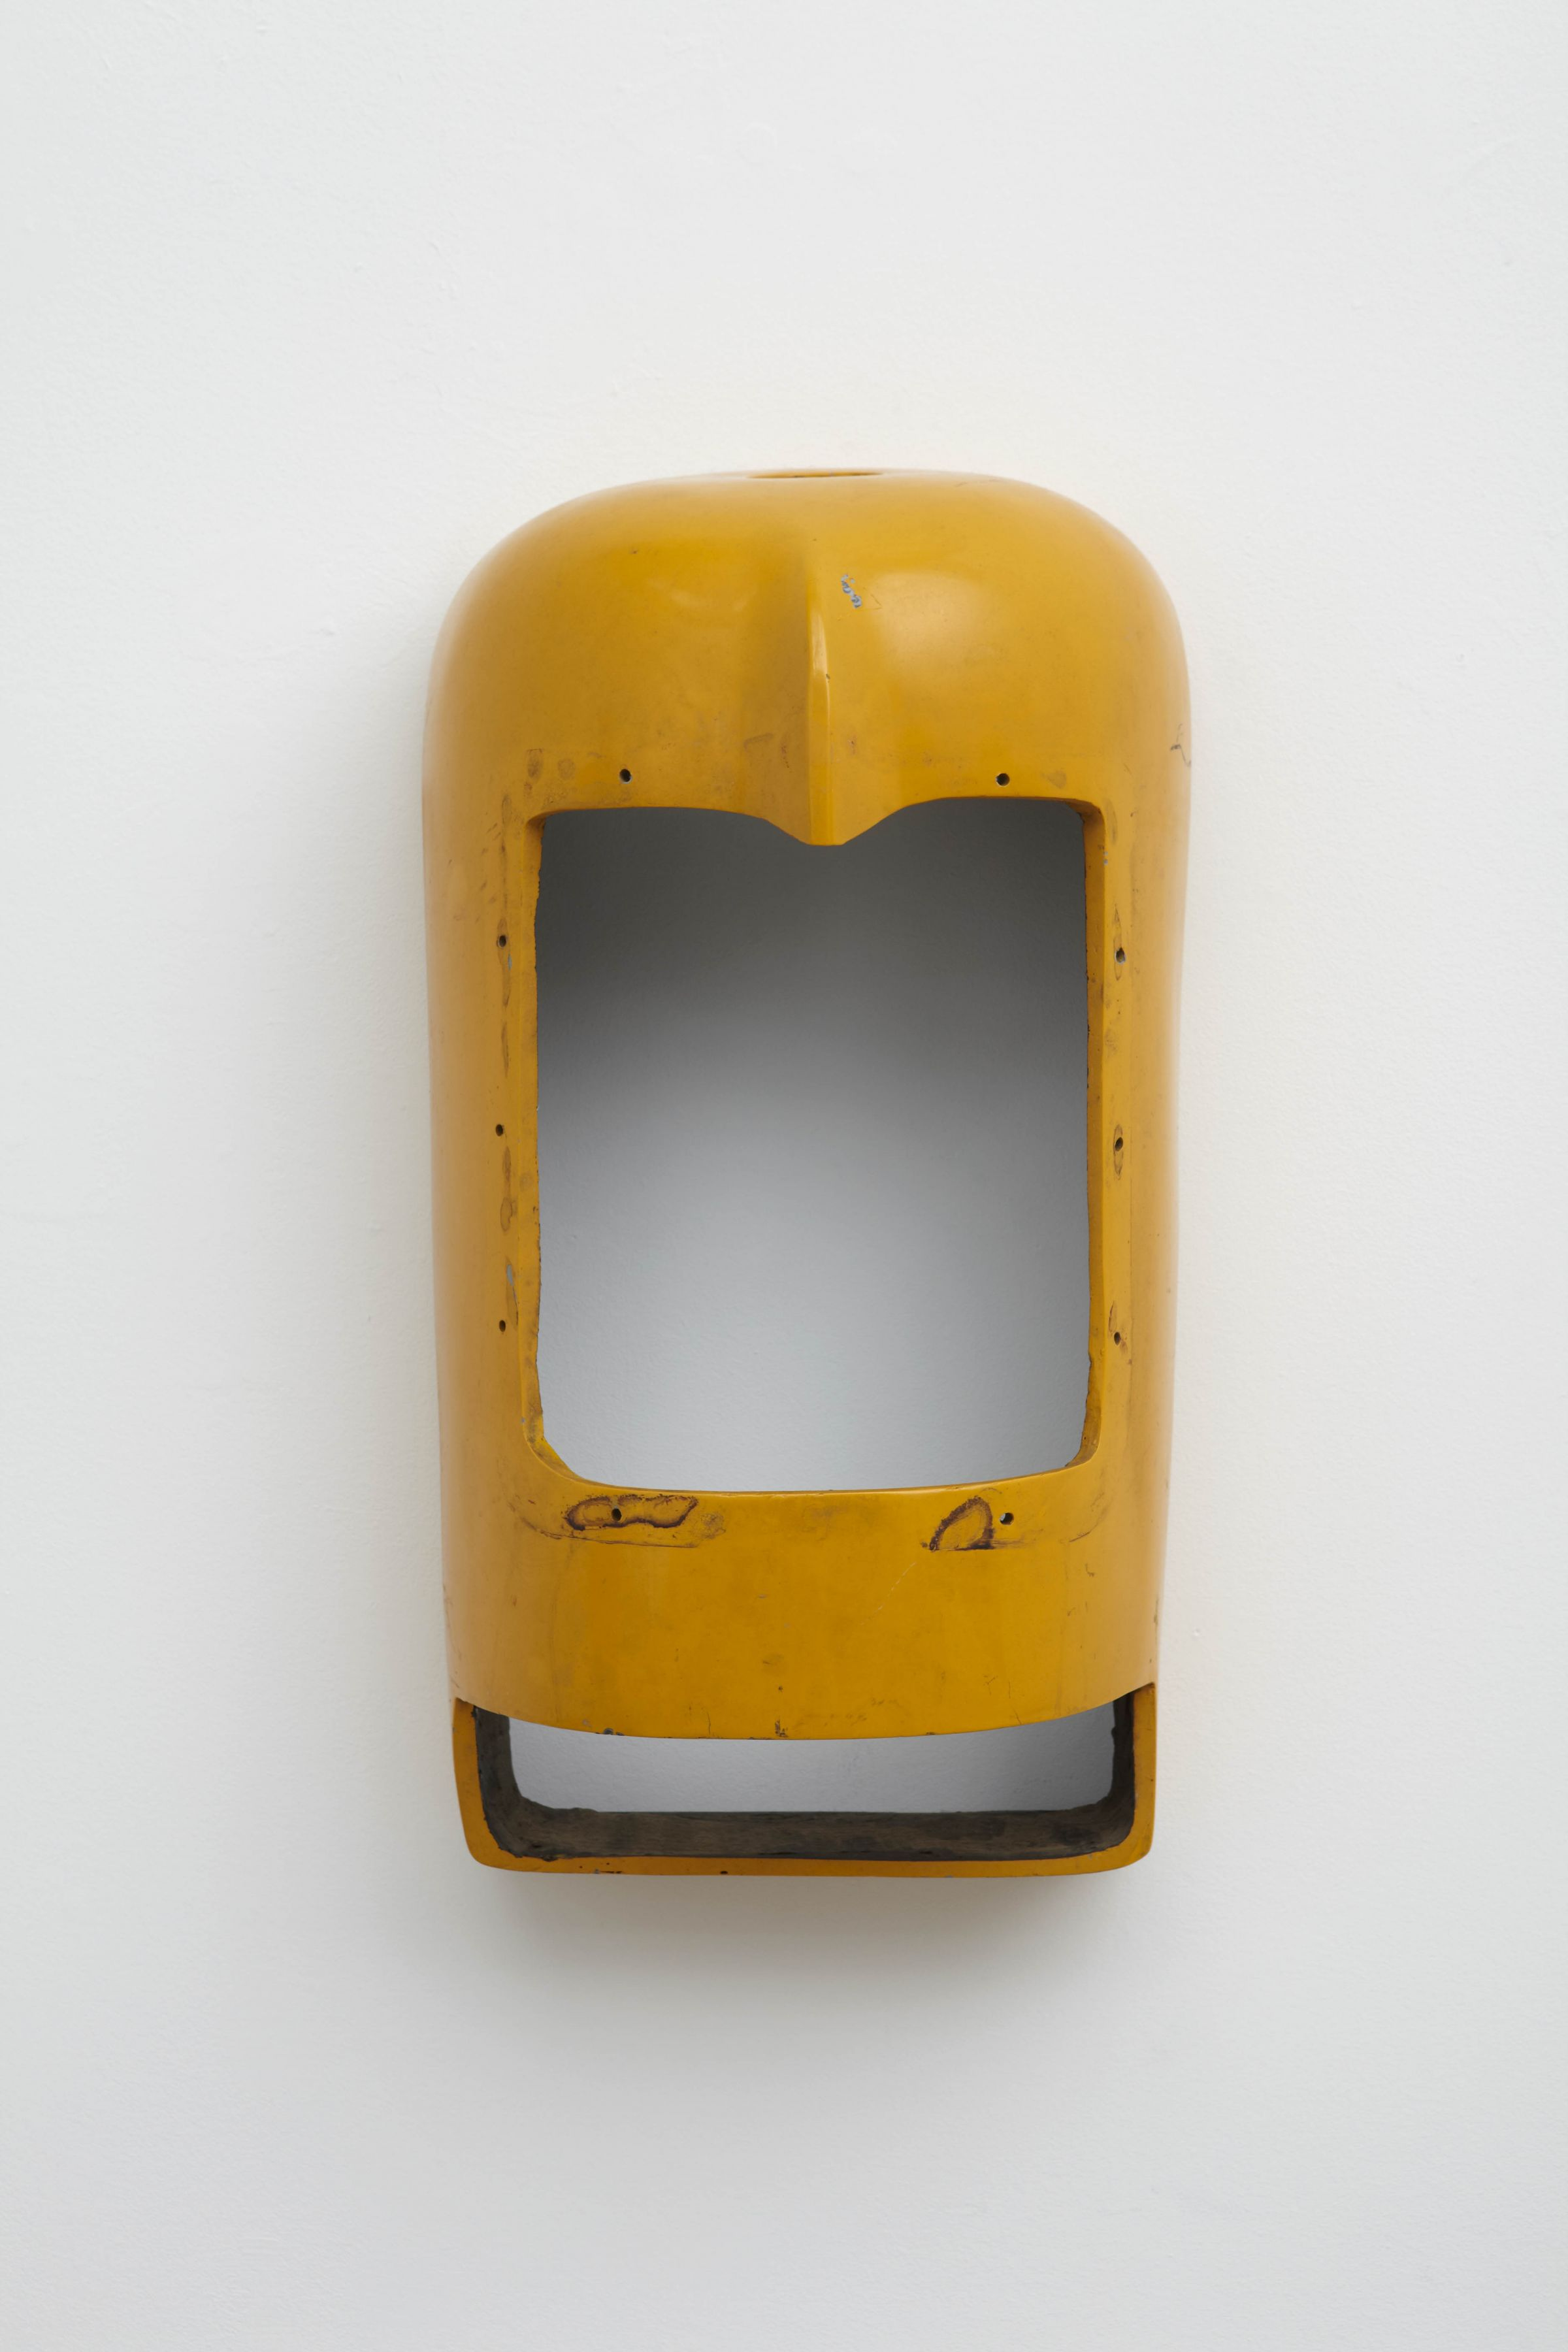 a fiberglass yellow sculpture by salvatore scarpitta for sale at marianne boesky gallery